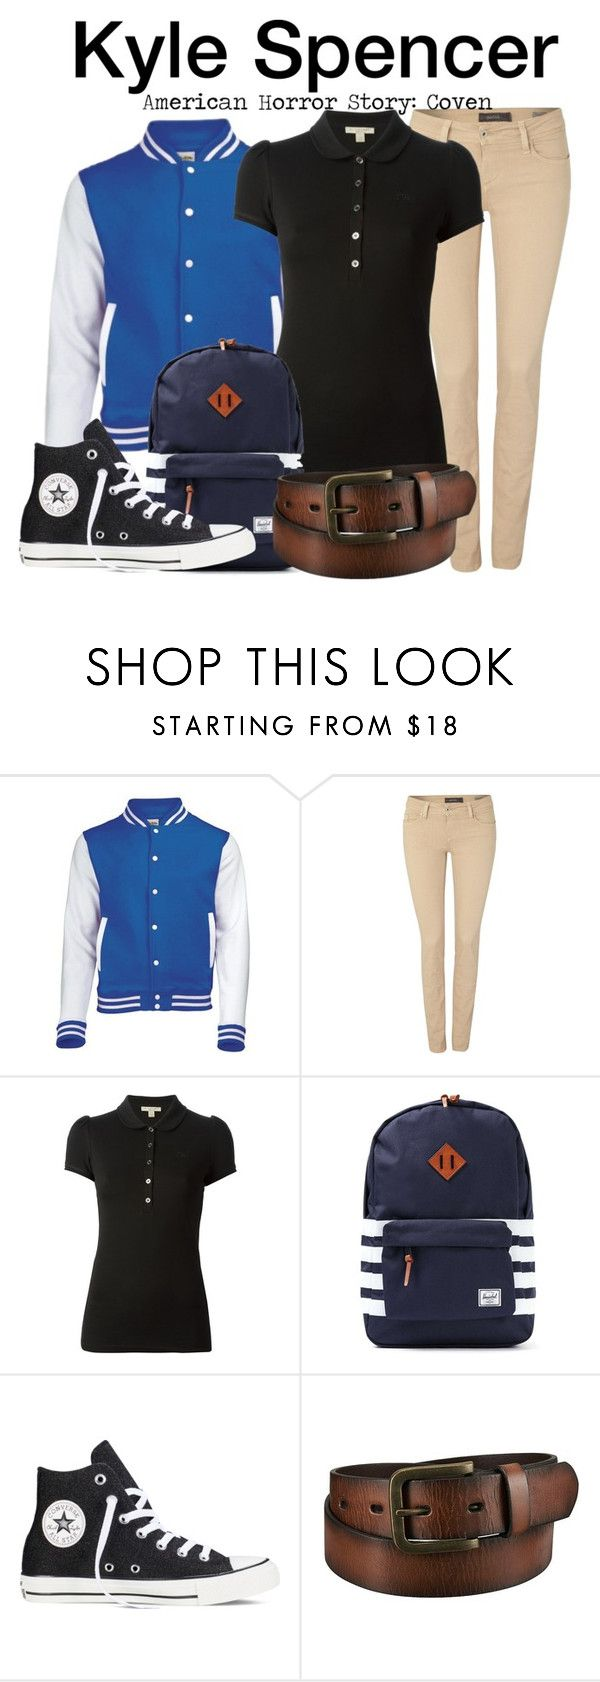 """Kyle Spencer - American Horror Story: Coven"" by nerd-ville ❤ liked on Polyvore featuring Salsa, Burberry, Herschel, Converse, Uniqlo, men's fashion, menswear, americanhorrorstory and ahs"